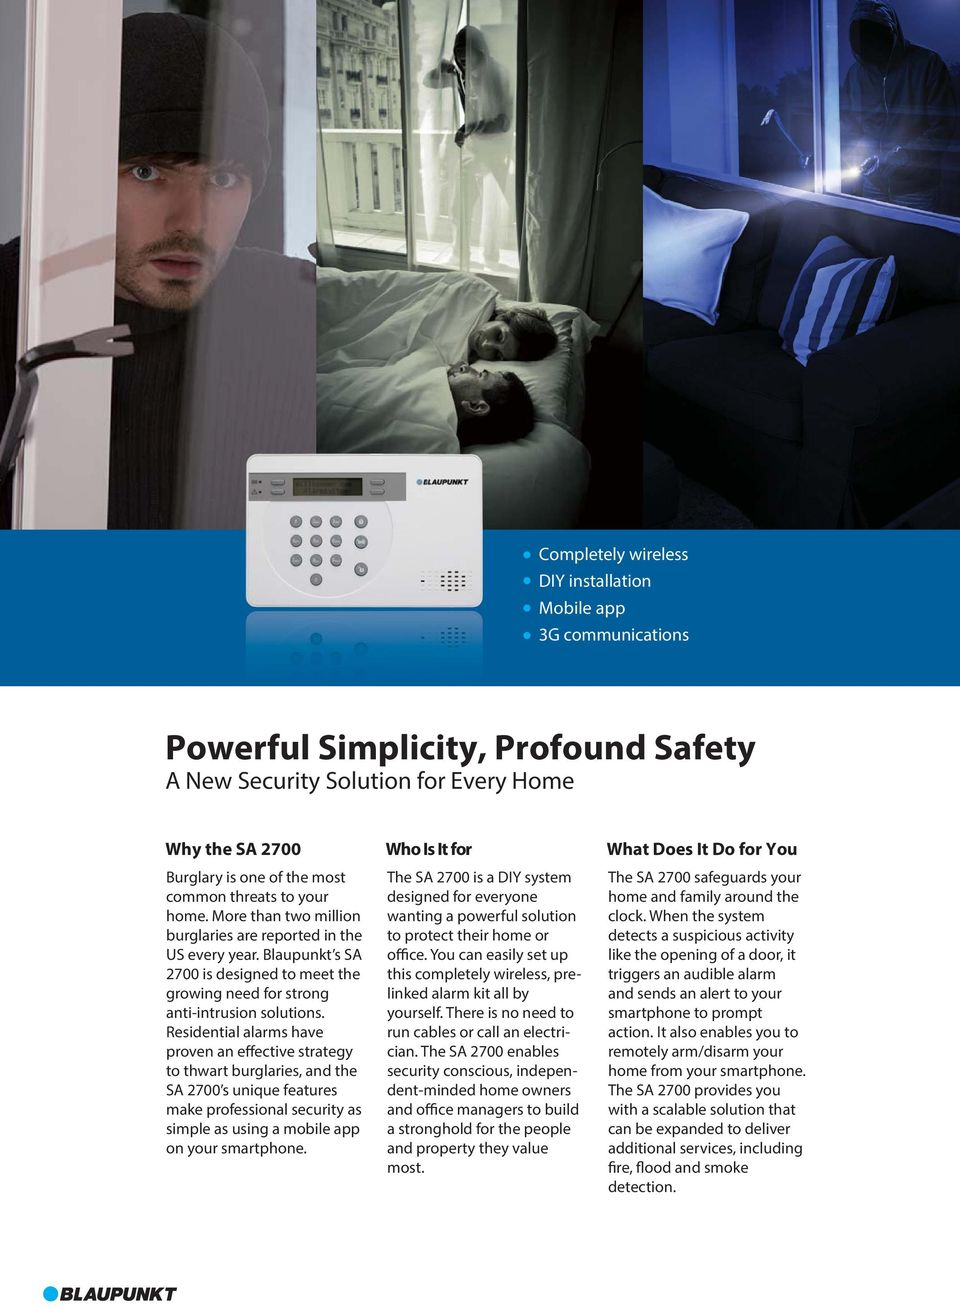 Blaupunkt s SA 2700 is designed to meet the growing need for strong anti-intrusion solutions.